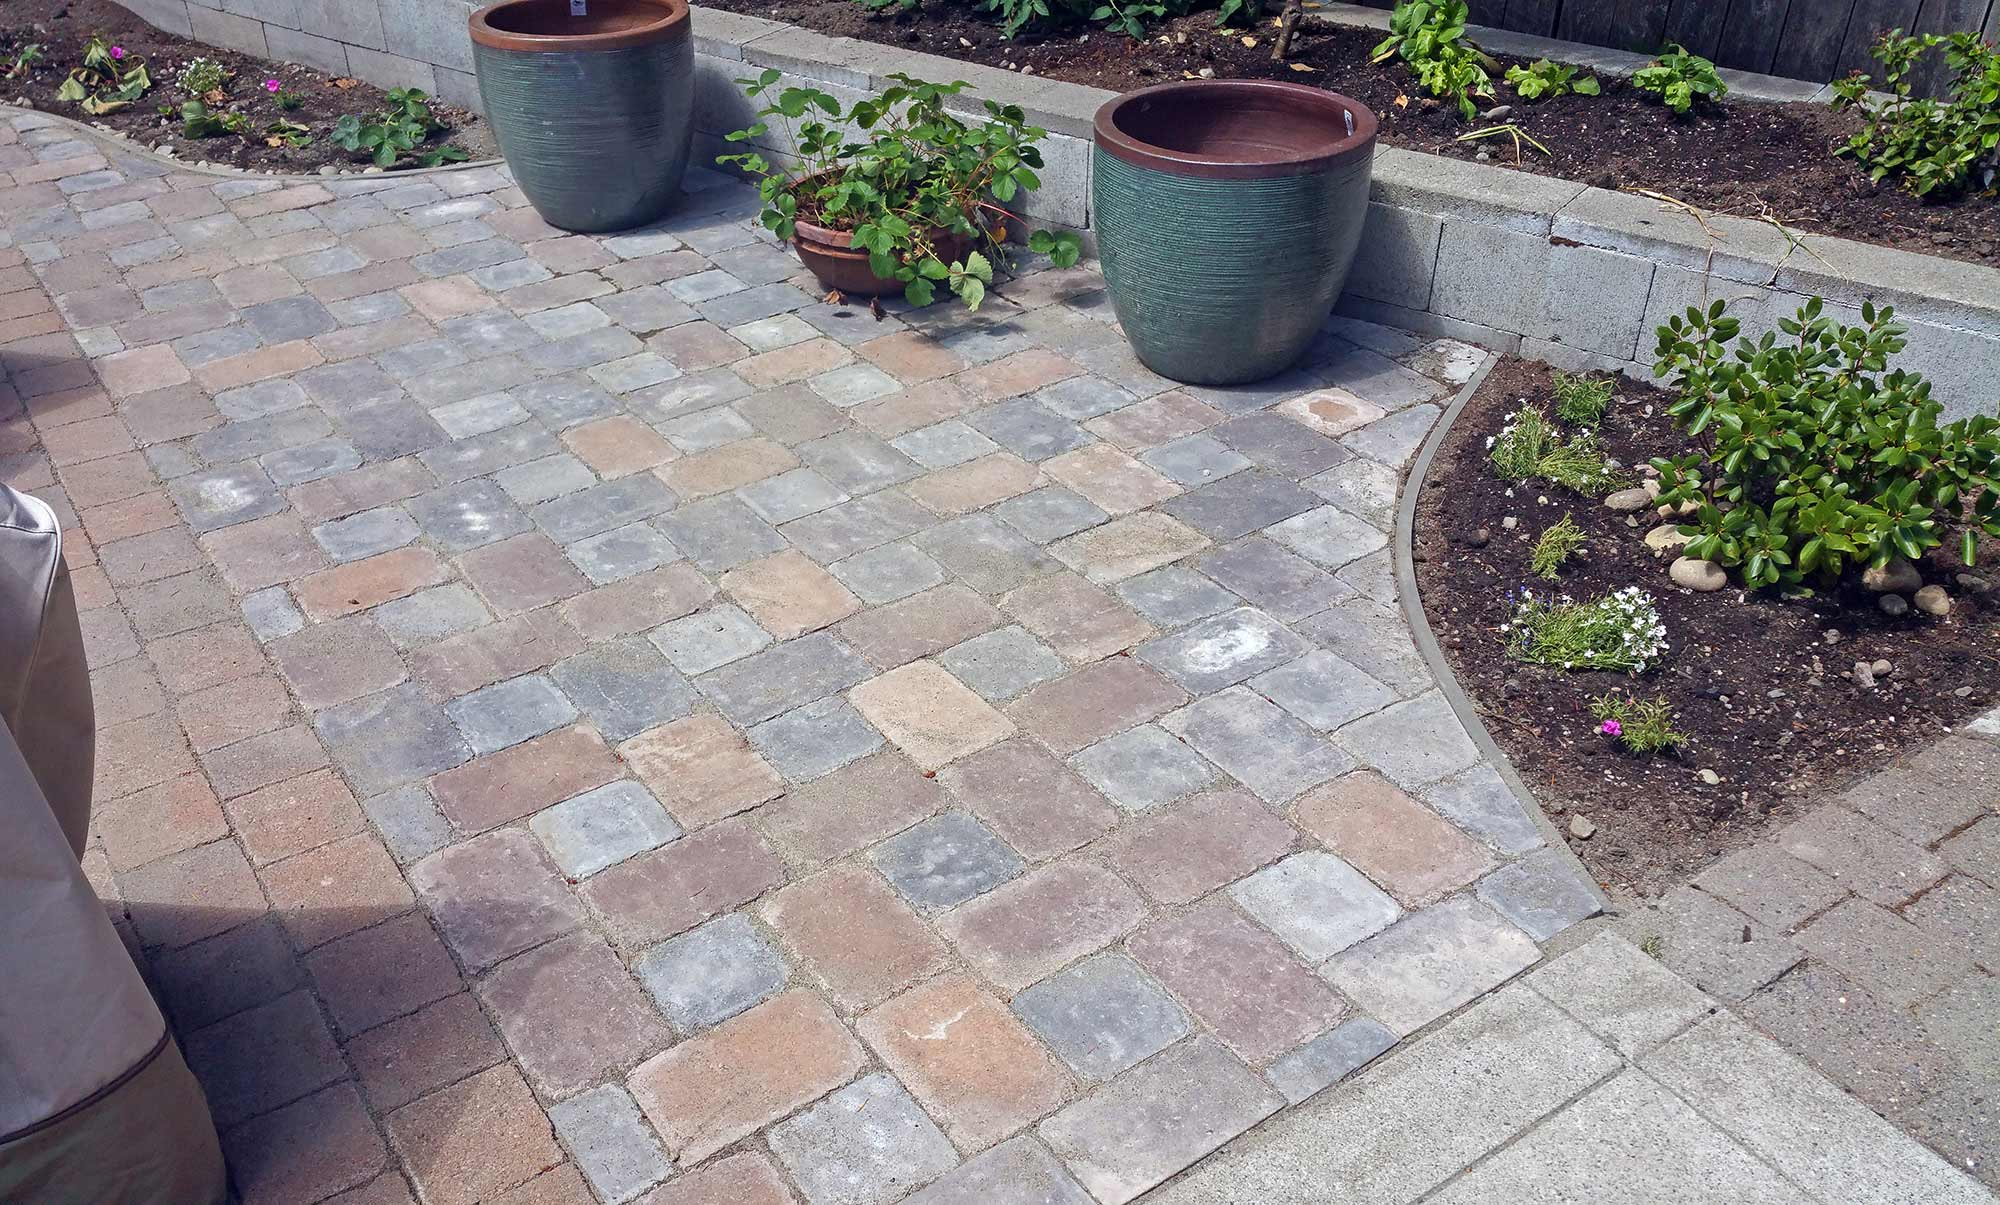 We extended the existing paver patio, integrating landscape beds and meeting a concrete slab.